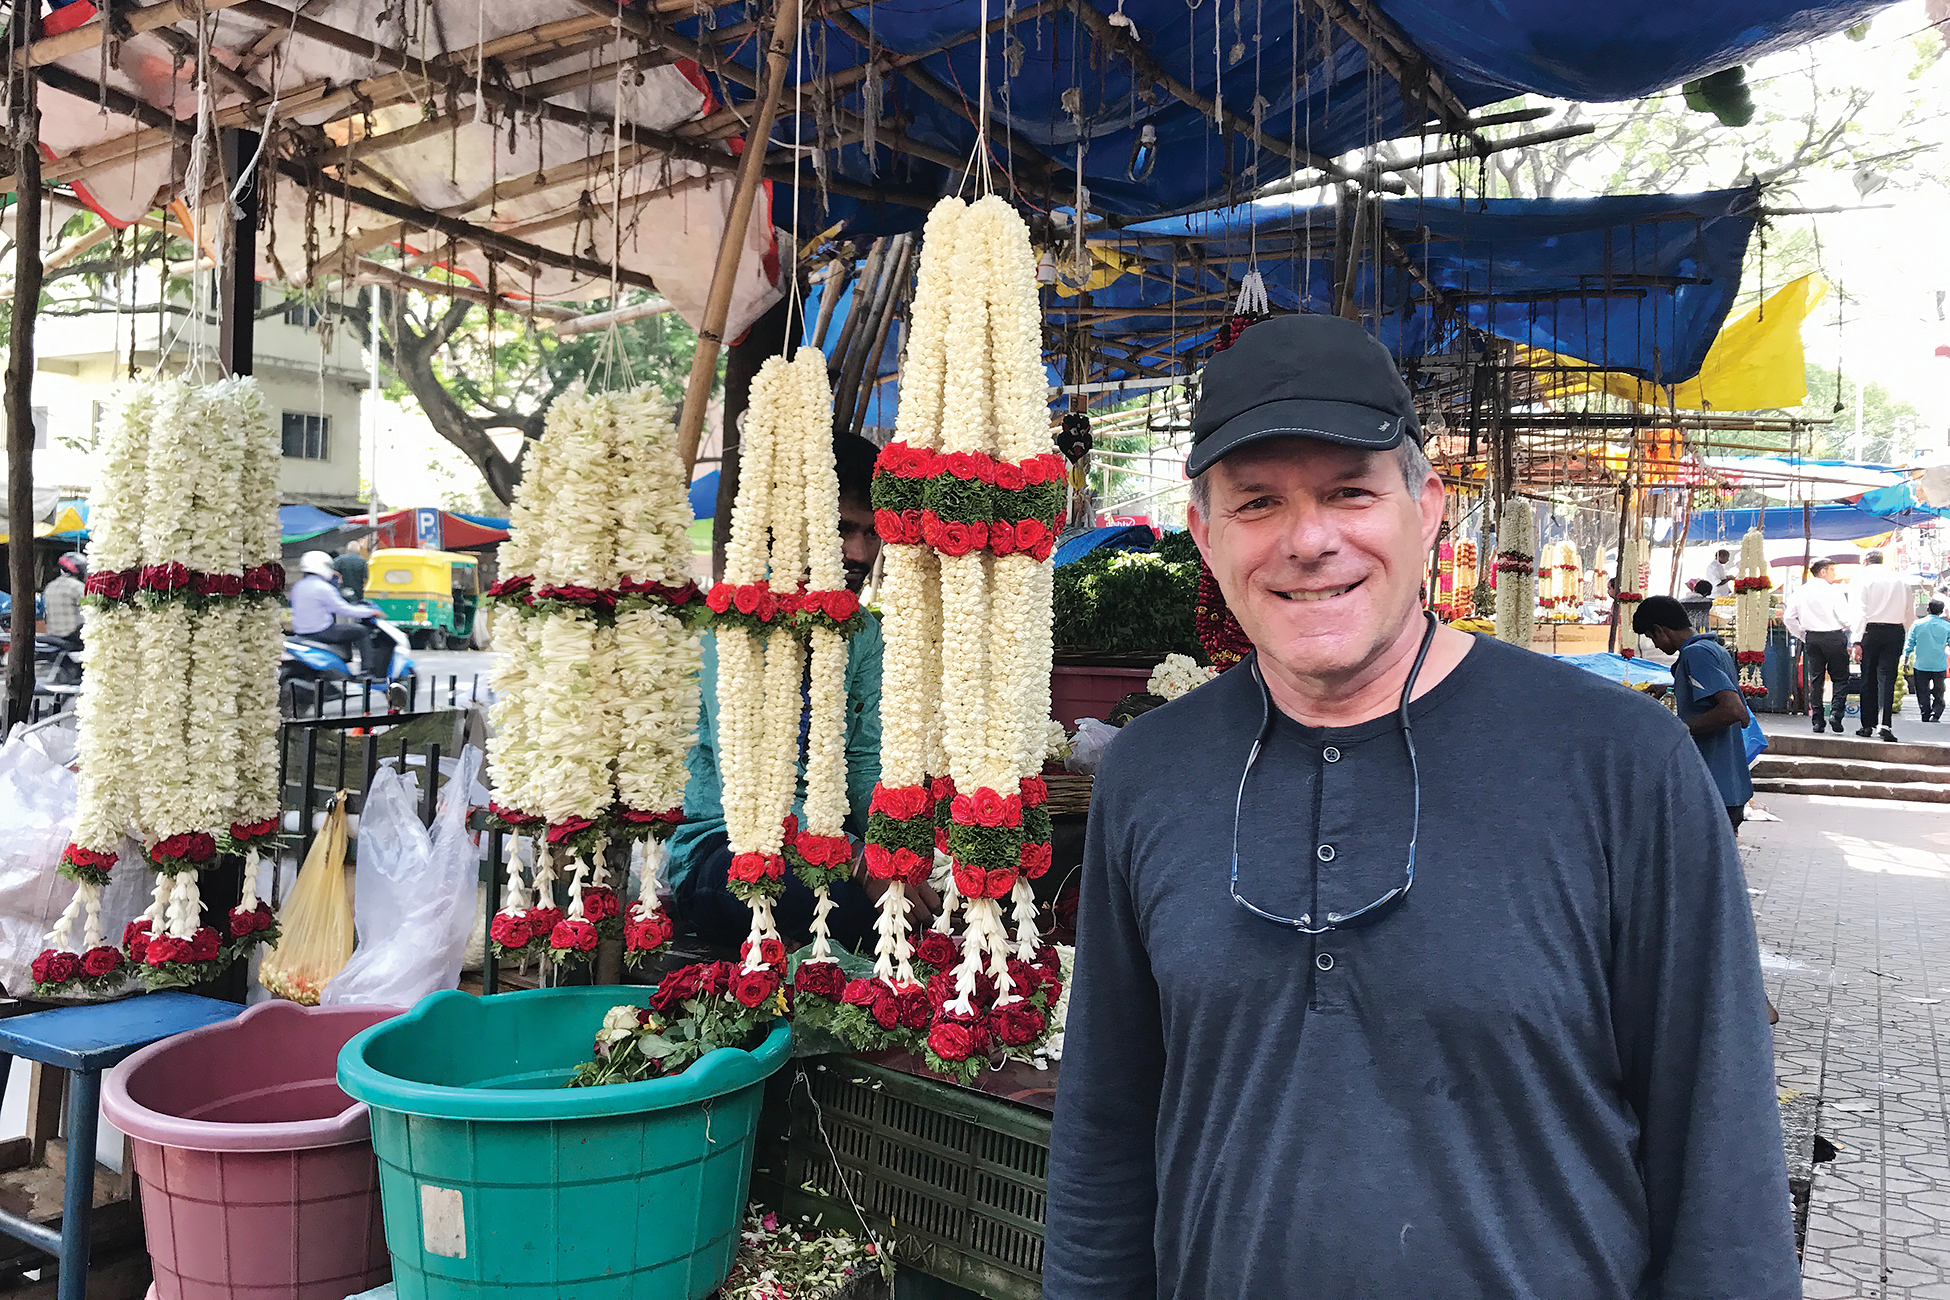 A man standing next to jasmine flower garlands.